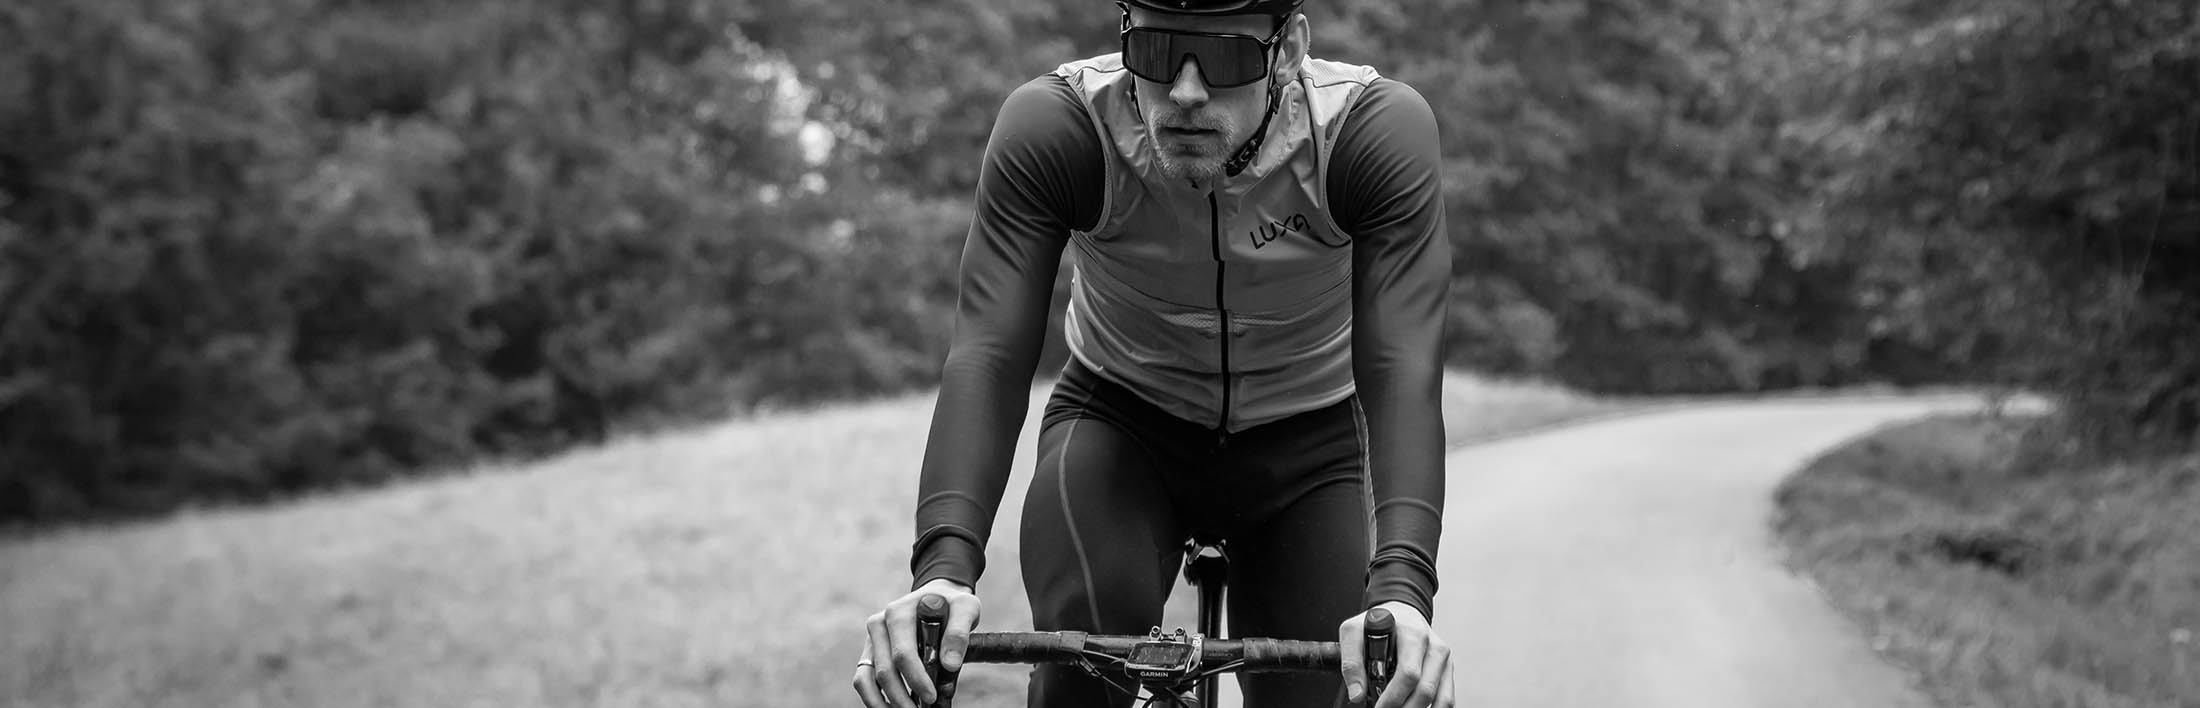 luxa gilets for road cyclists